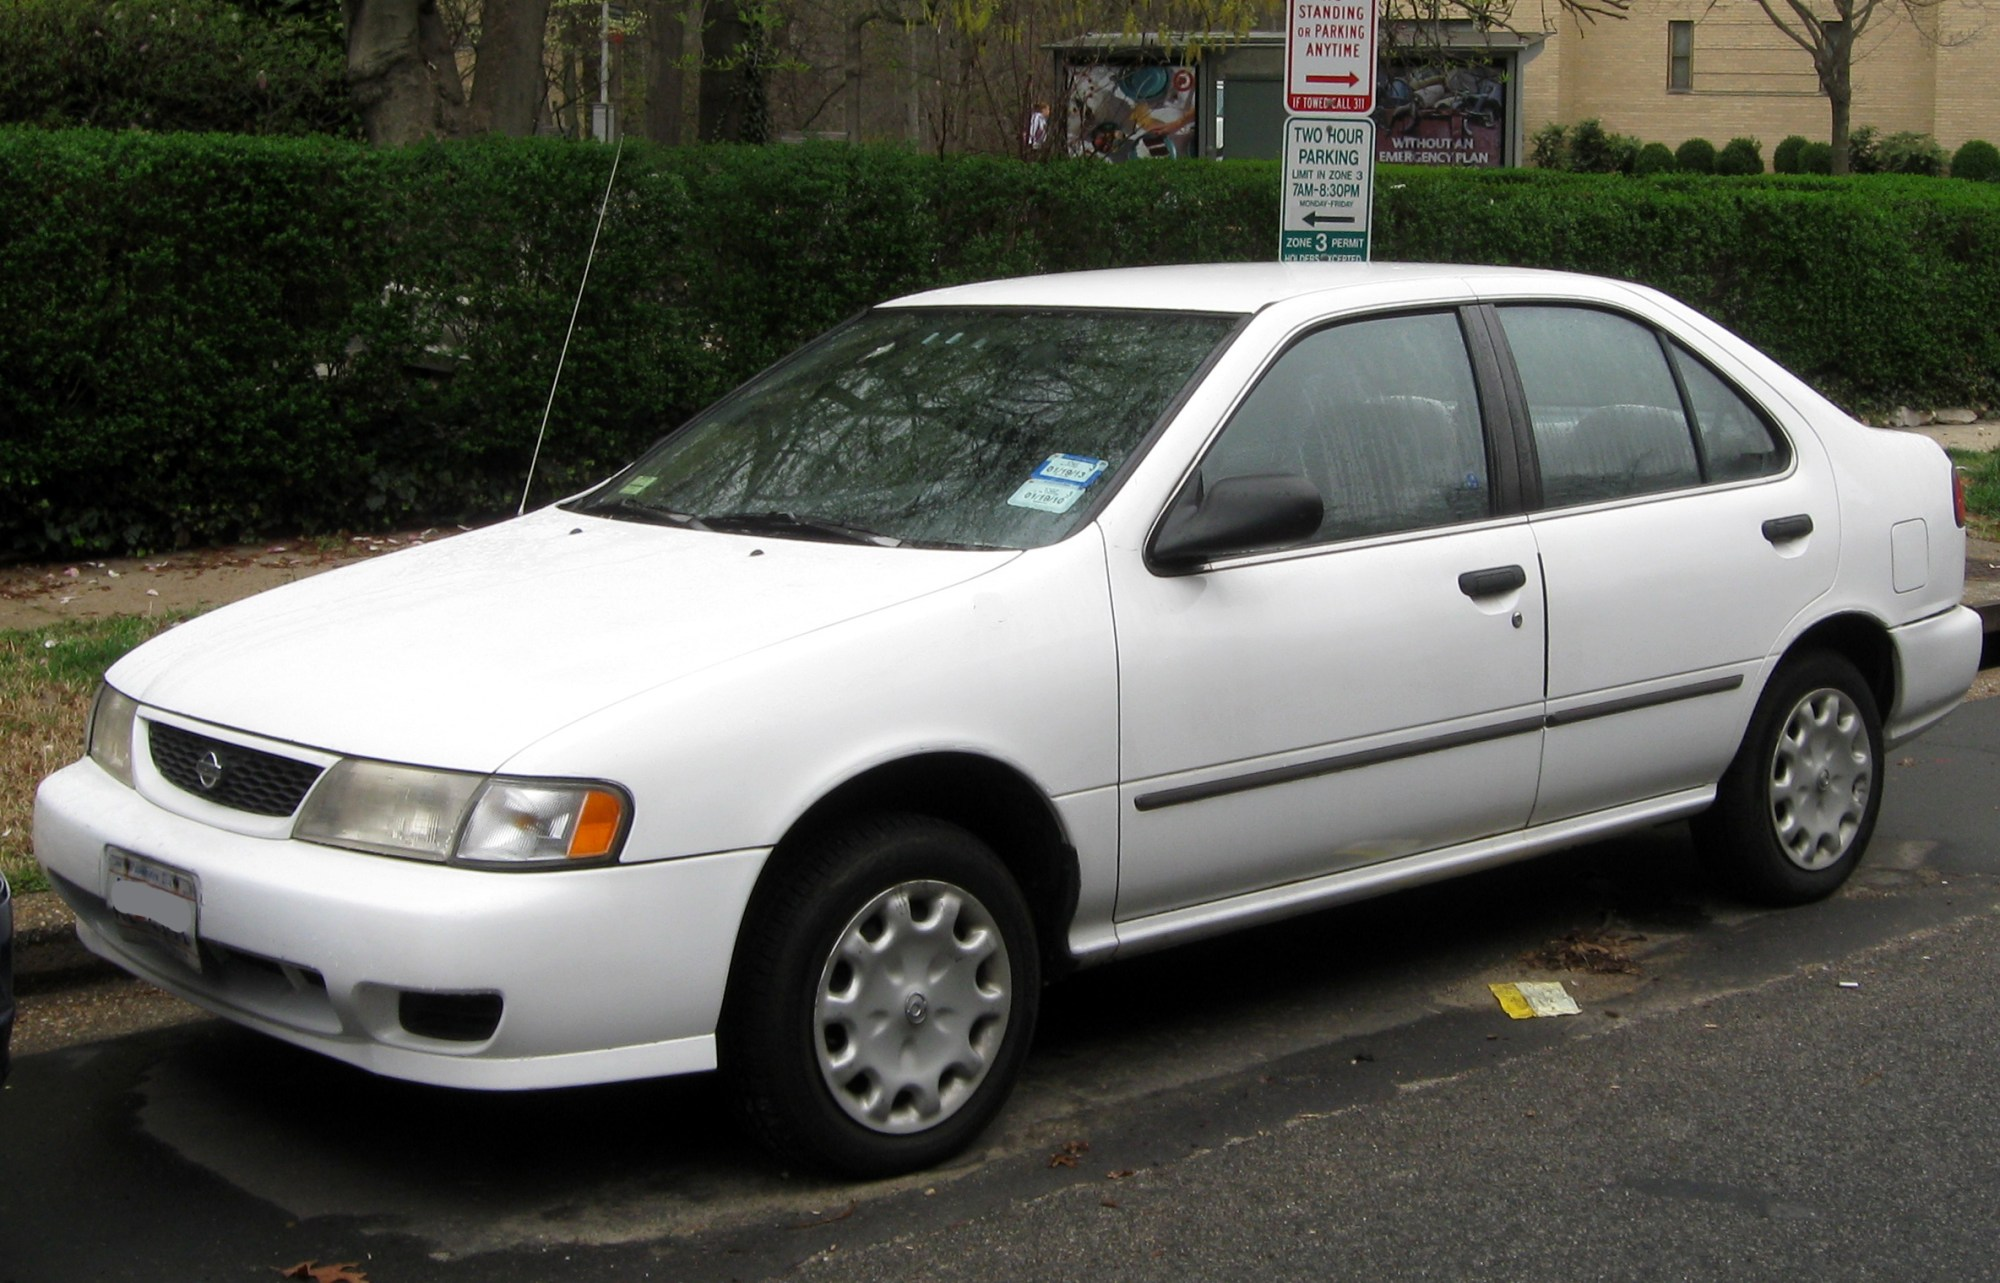 hight resolution of file 1998 nissan sentra gxe 03 21 2012 jpg